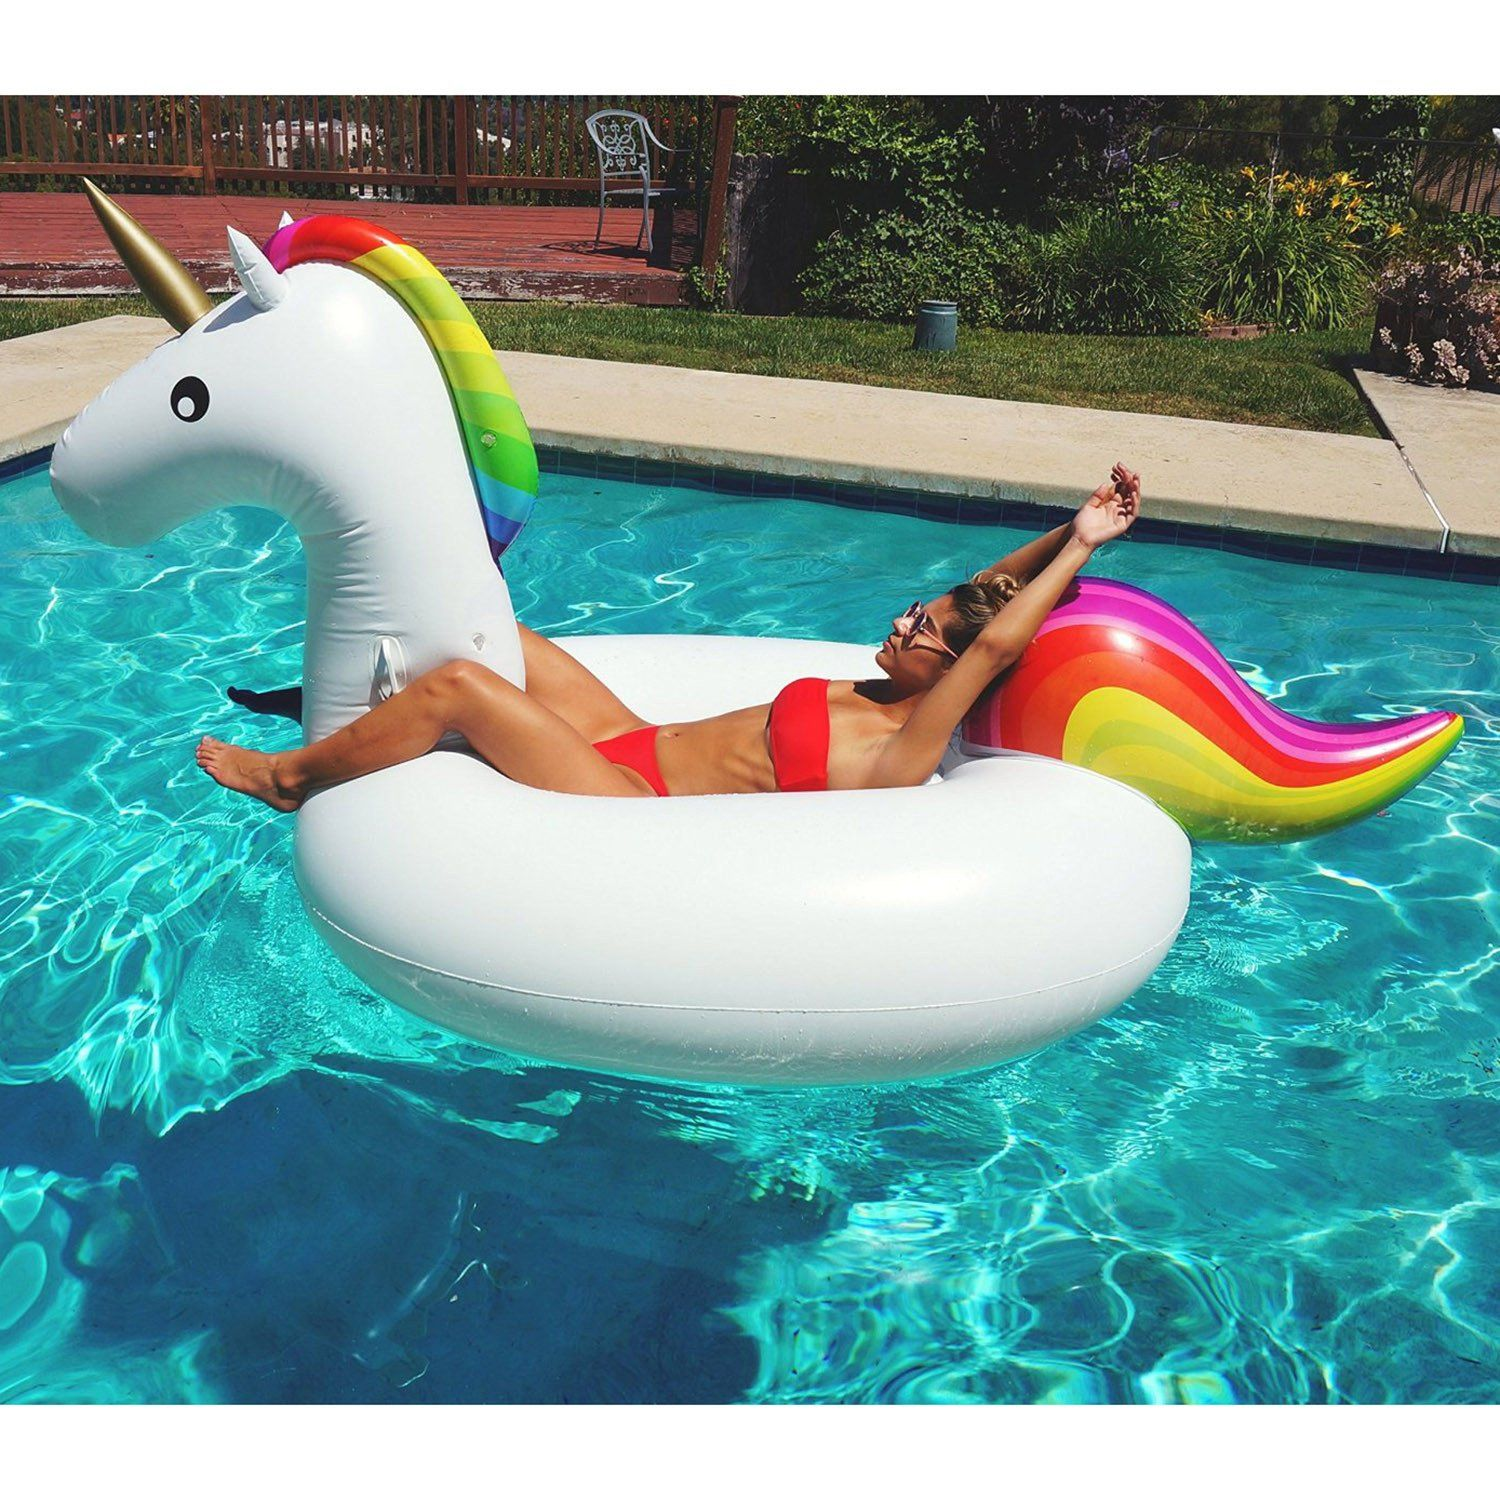 Inflatable Giant Unicorn Pool Float With Repair Kit And